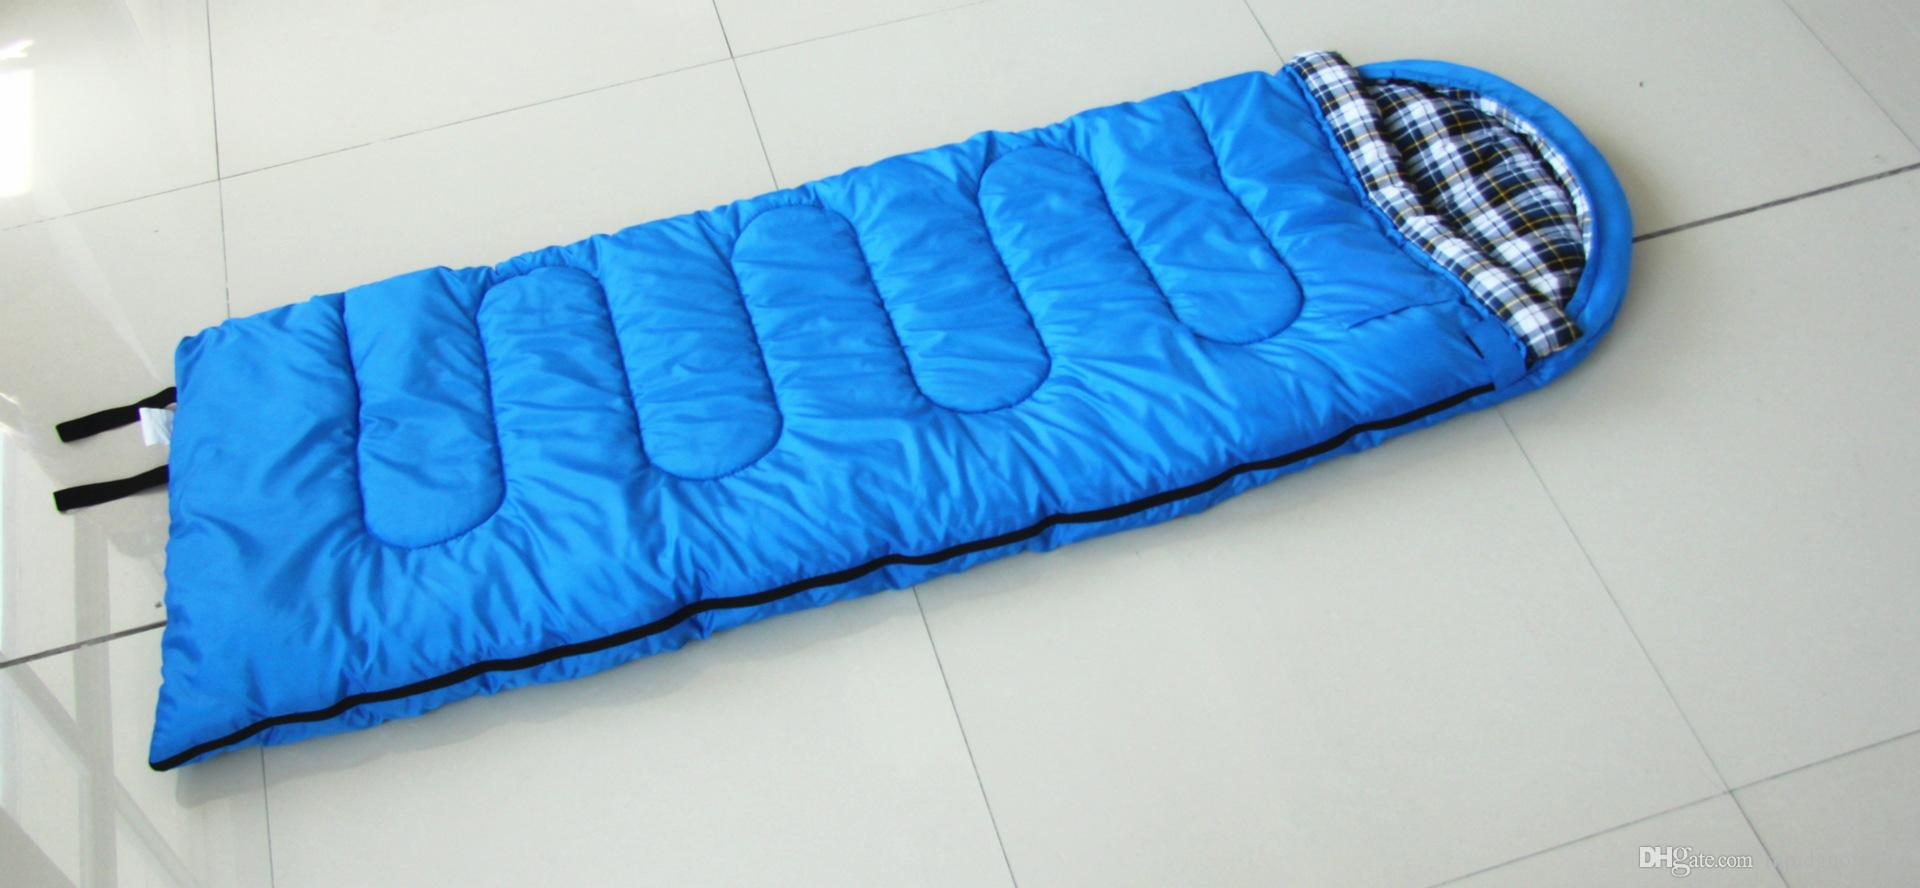 The 5 Best Flannel Sleeping Bags – [Top Reviews & Rankings]